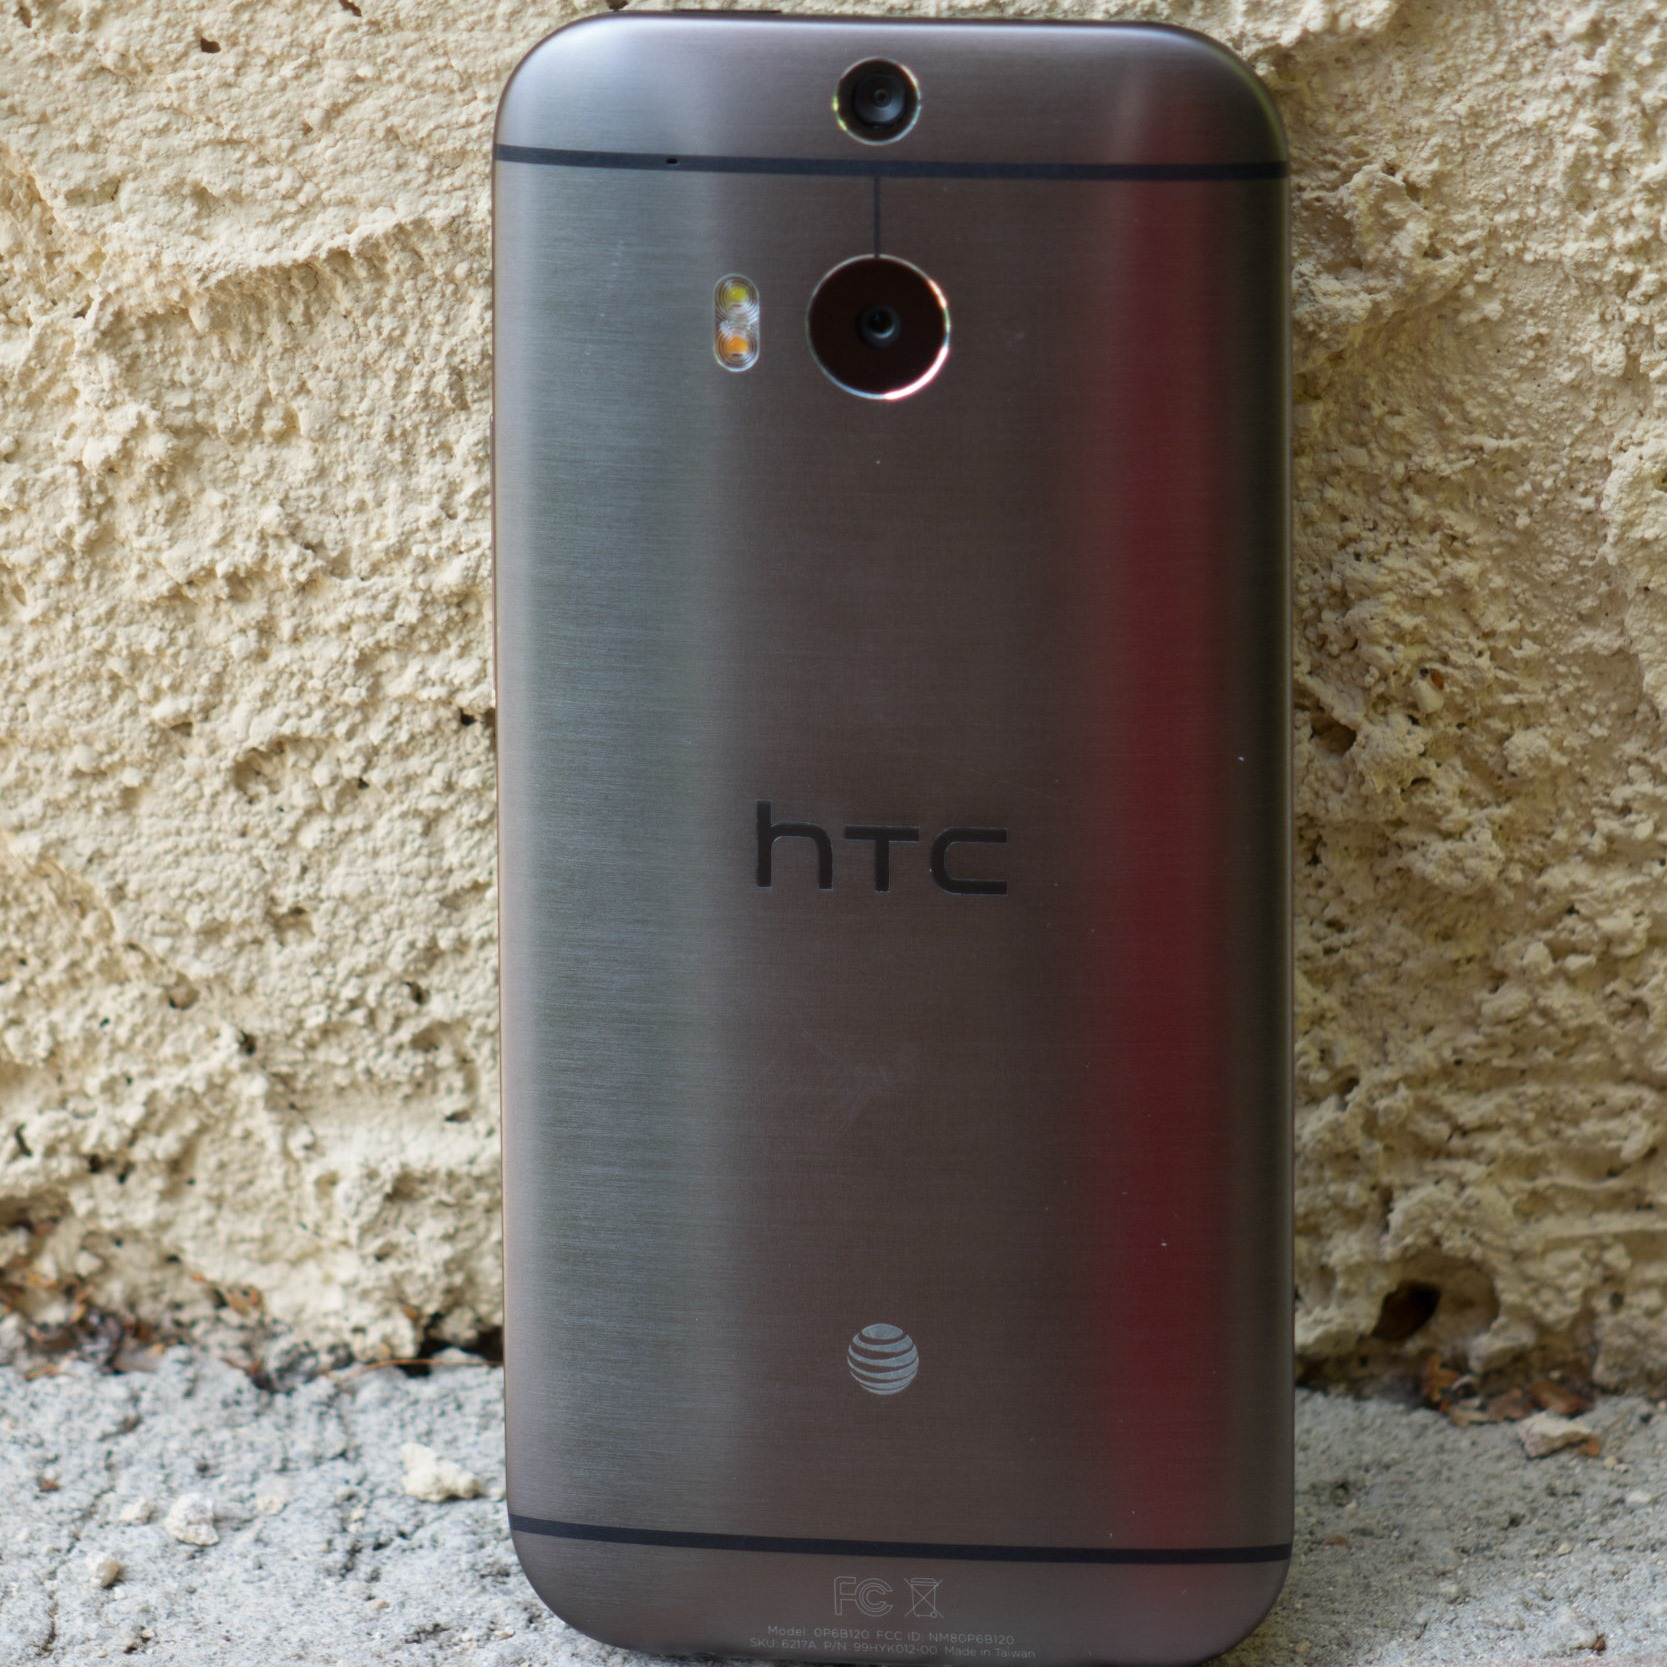 htc one m8 review Archives - Android Police - Android news